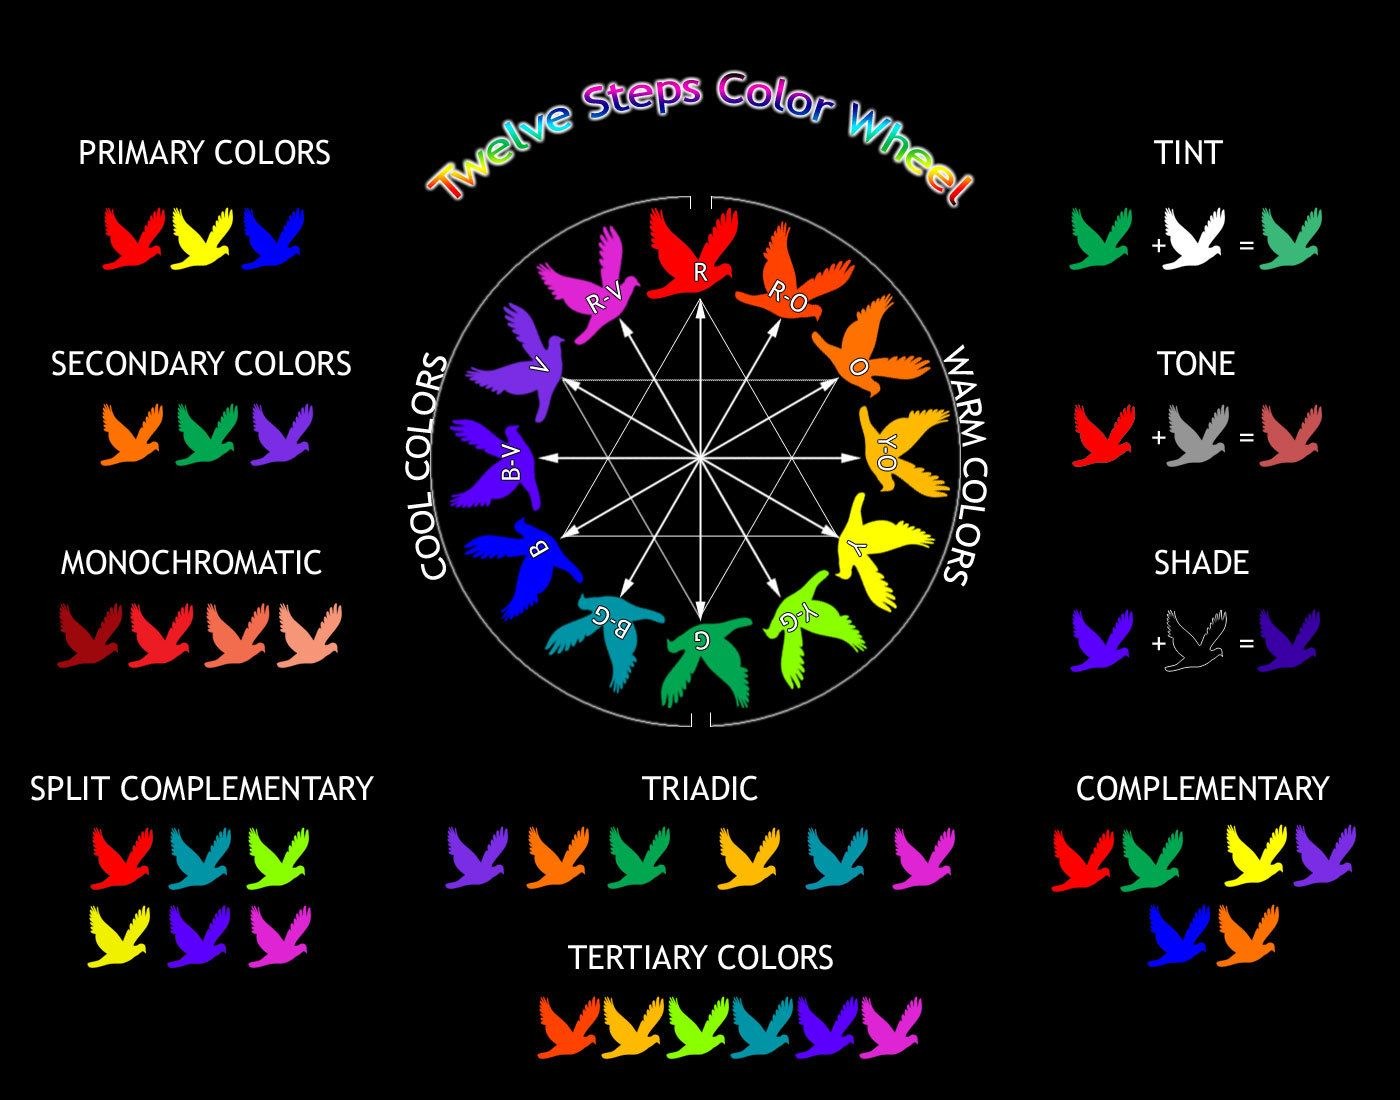 This Is A Simple Color Wheel Free To Use As References Talking About Color It Can Be Really Complex But Here Is The Basic Way To Explain Color Without